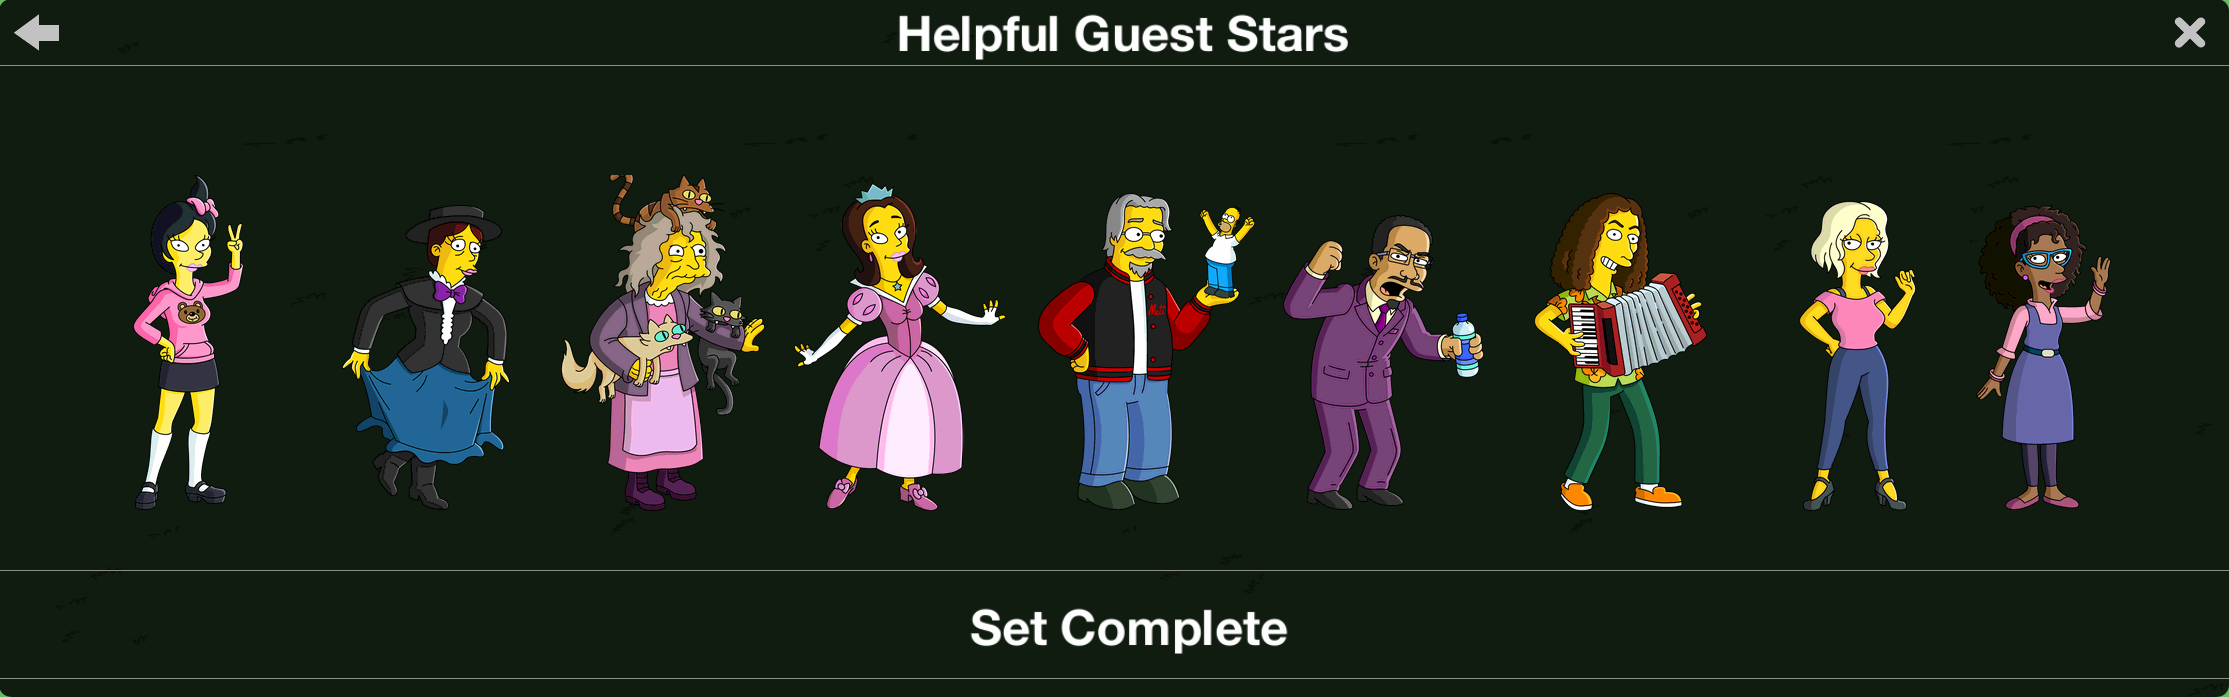 Helpful Guest Stars.png